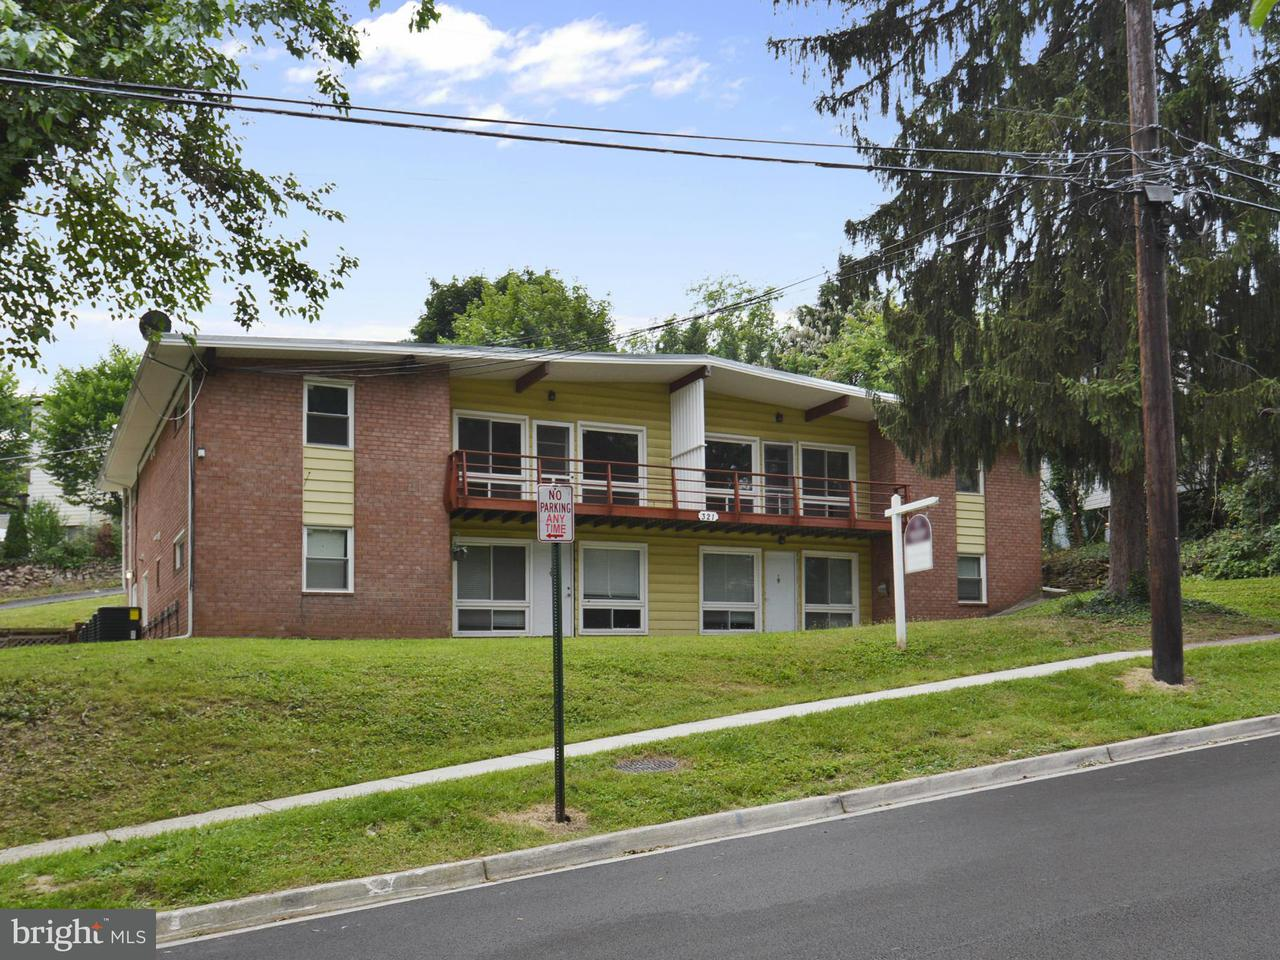 Other Residential for Rent at 260 Manor Cir #1 Takoma Park, Maryland 20912 United States